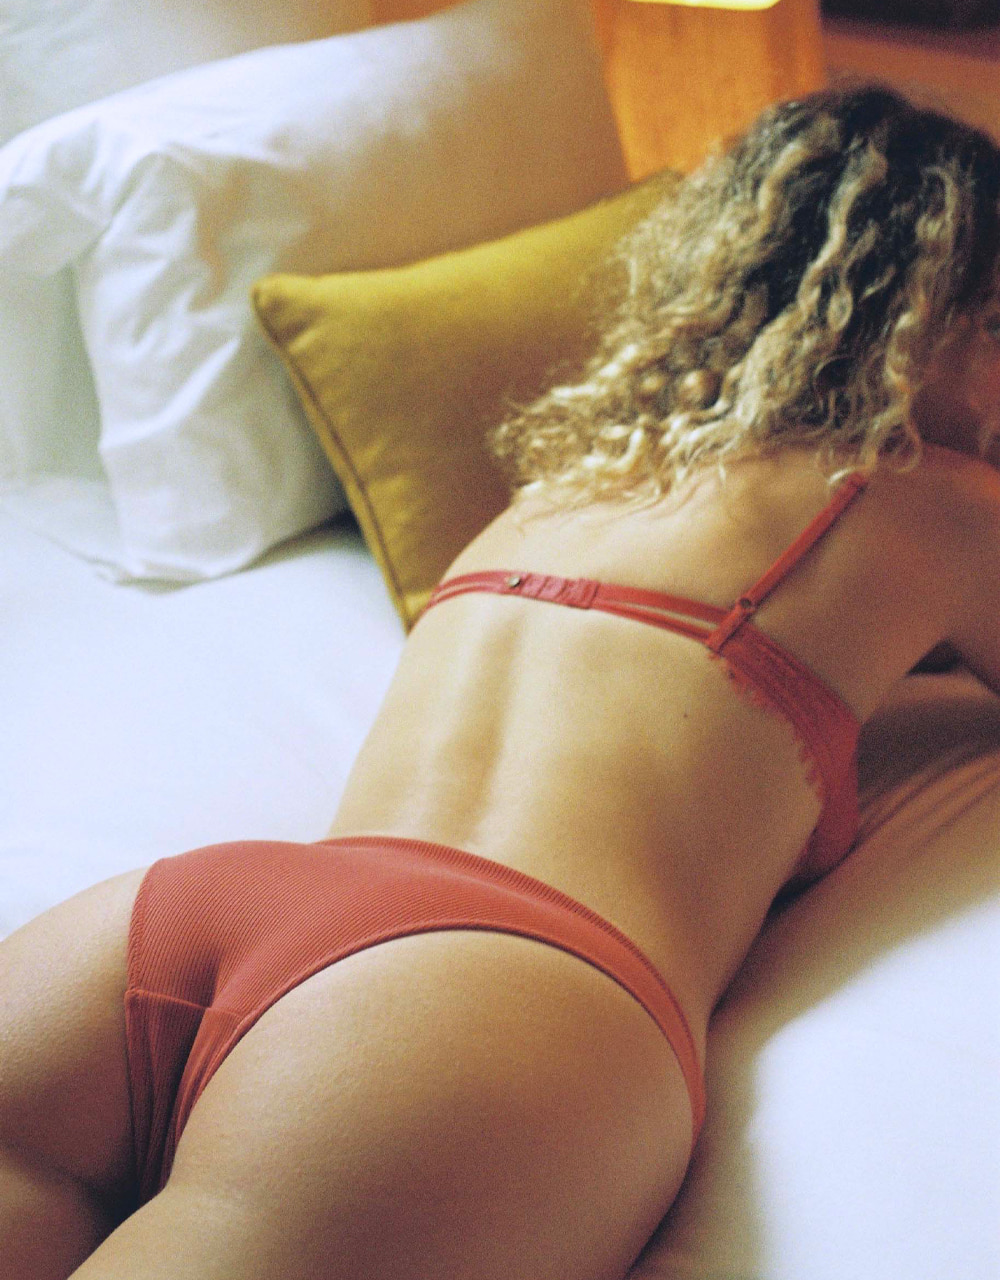 lingerie bra with underwires Charlie Tan 39 € Girls In Paris photo 2